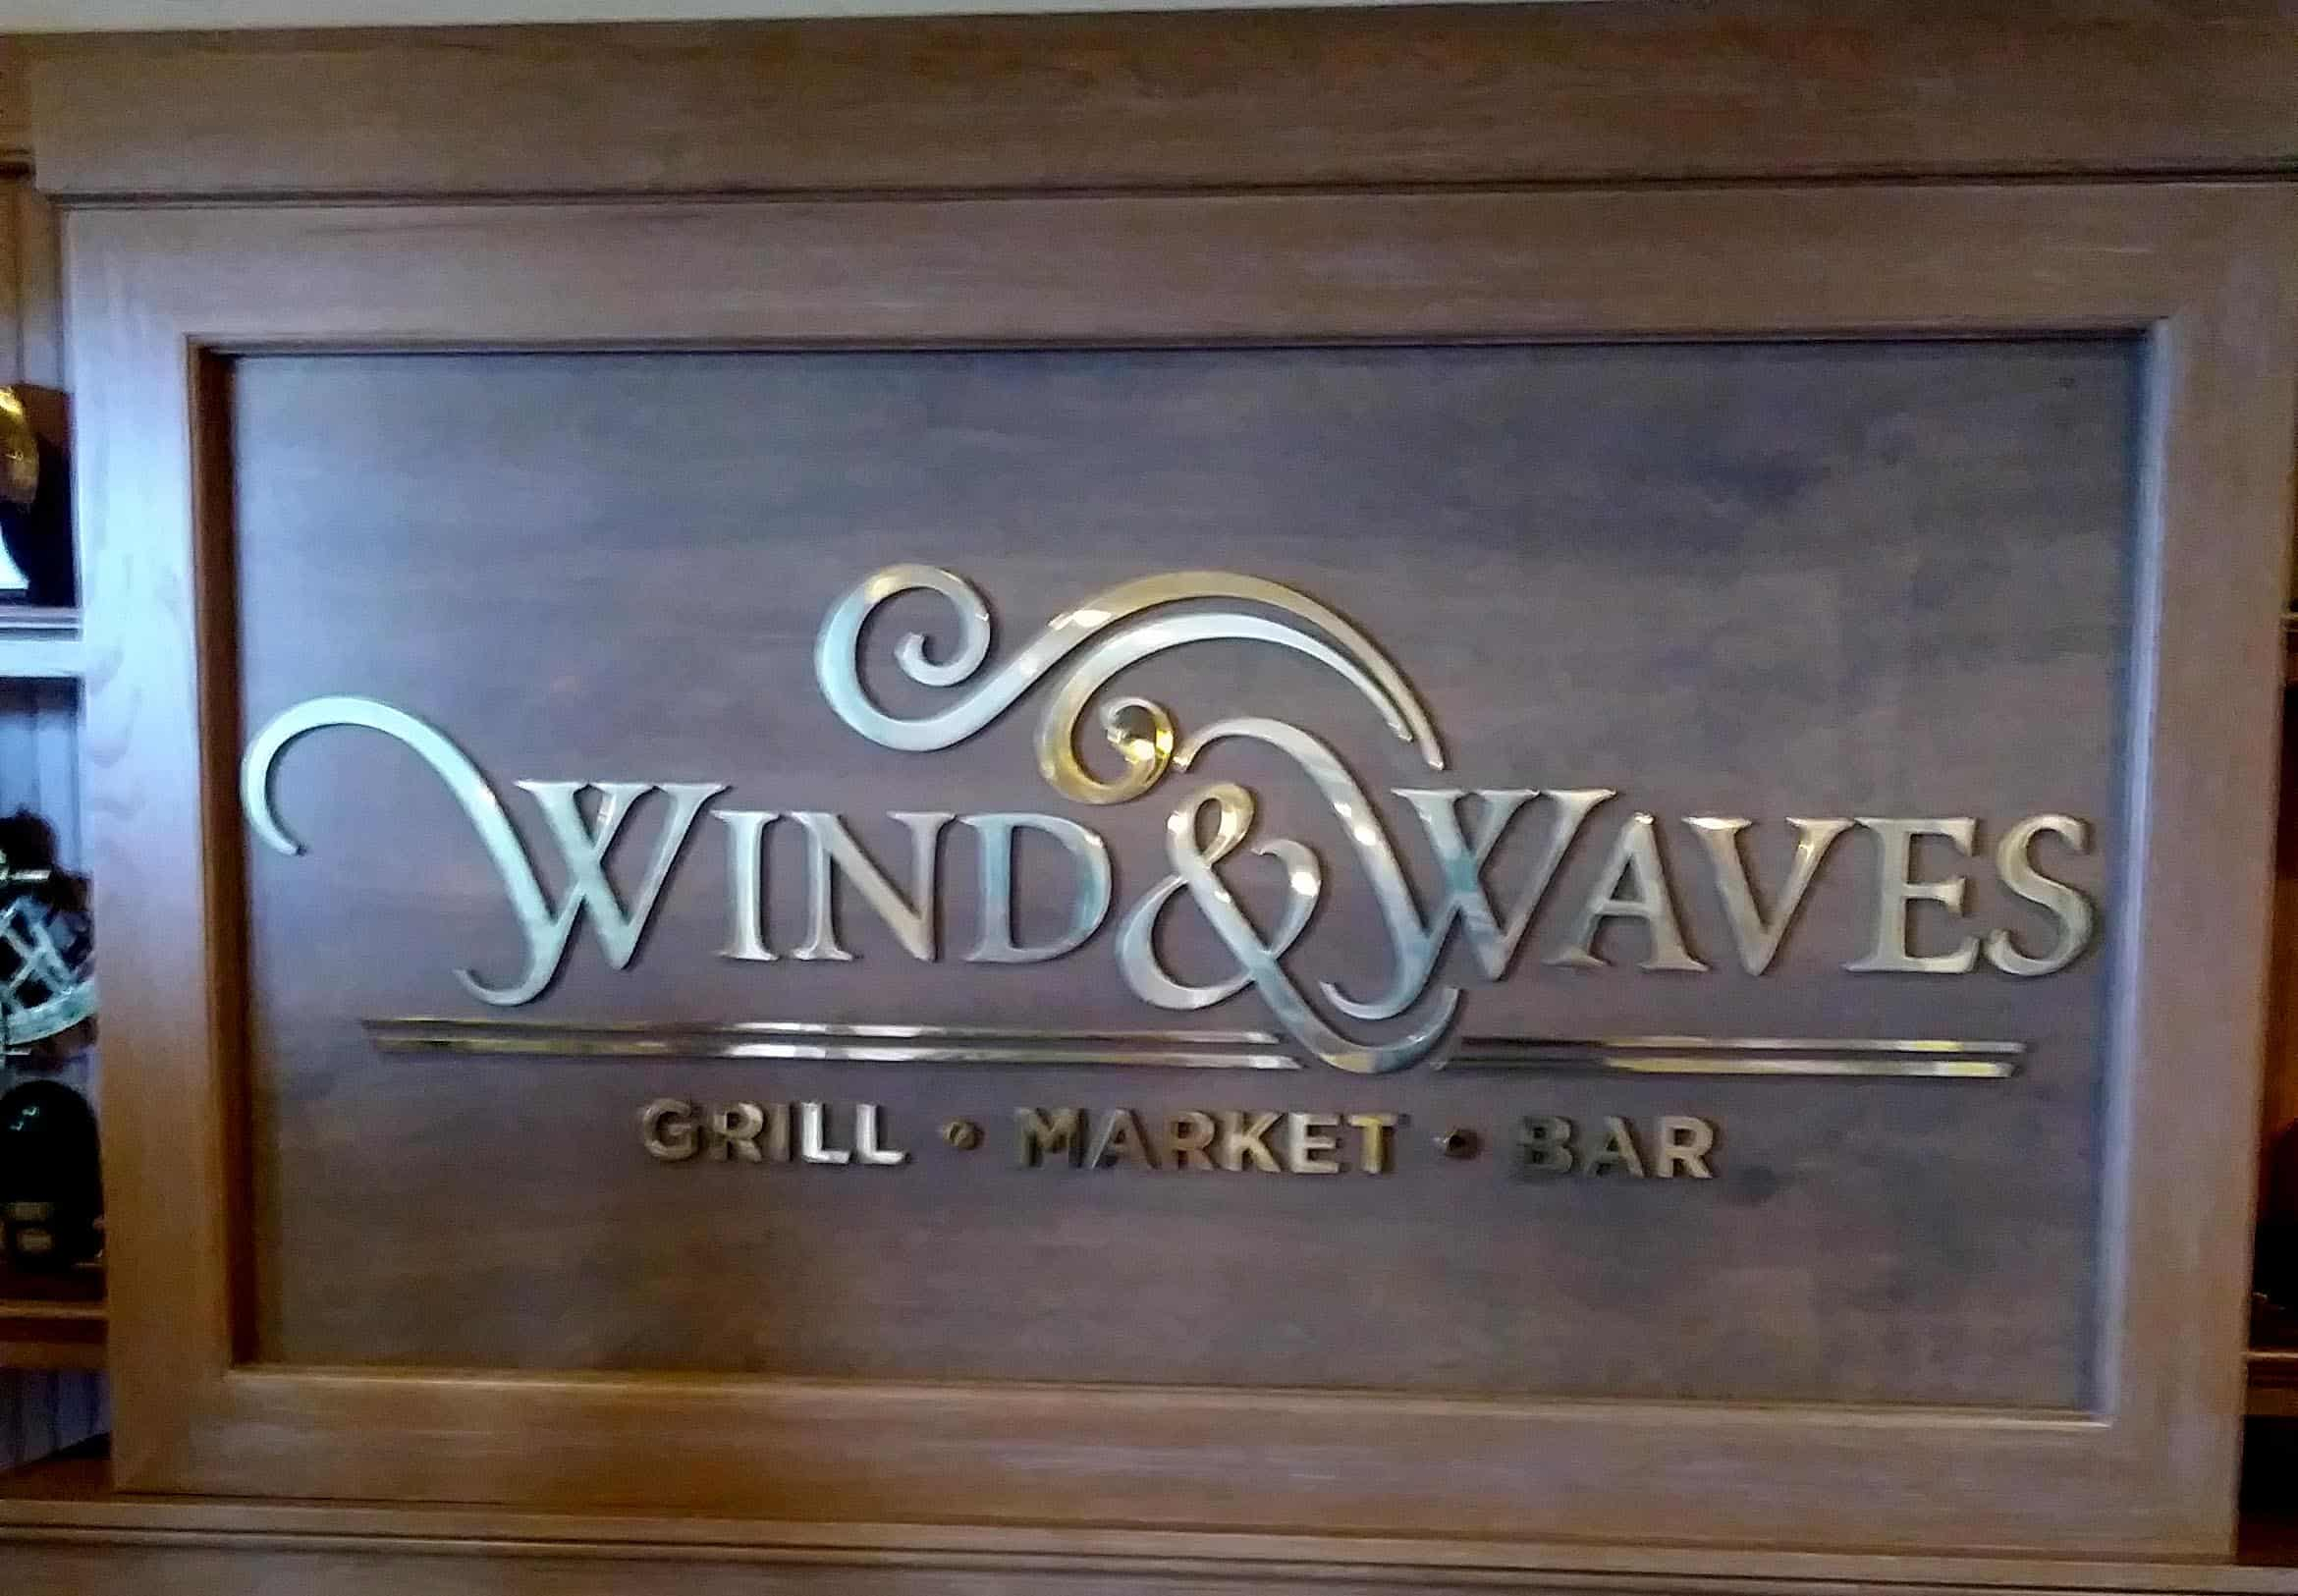 Disney's Vero Beach Resort - Wind & Waves Restaurant - Wind & Waves